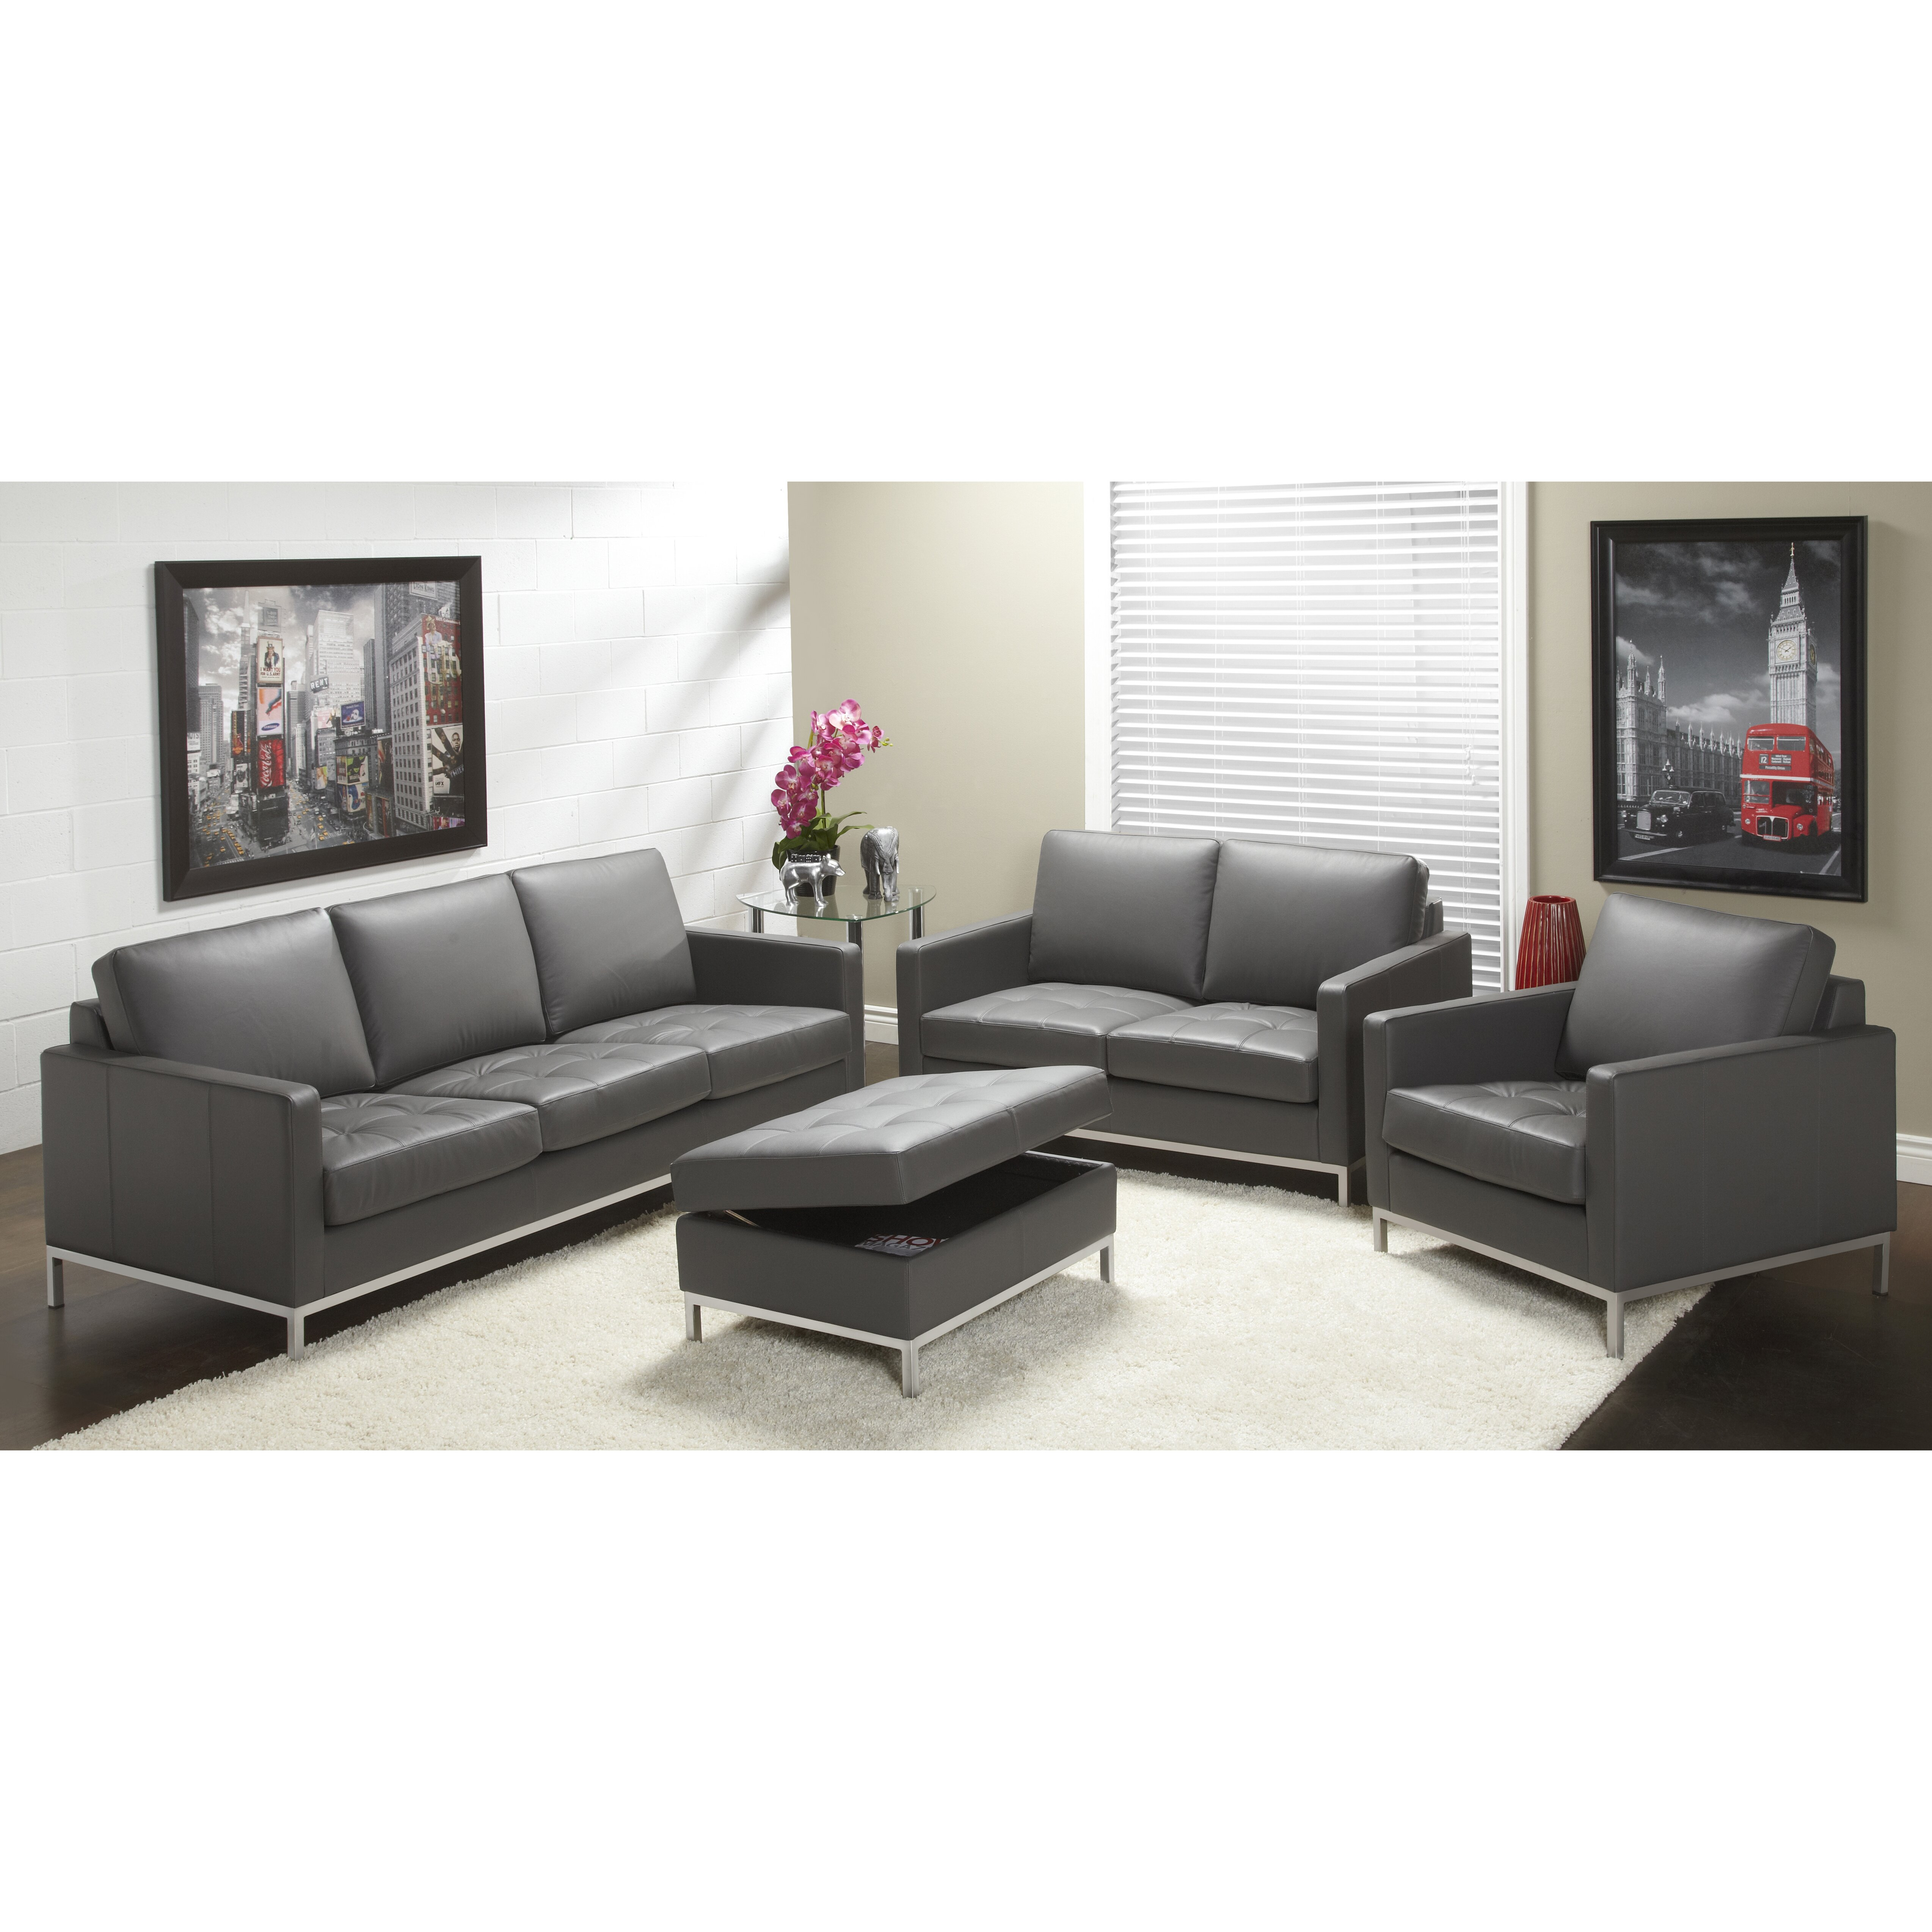 Leather living room furniture collection review 28 for I furniture reviews